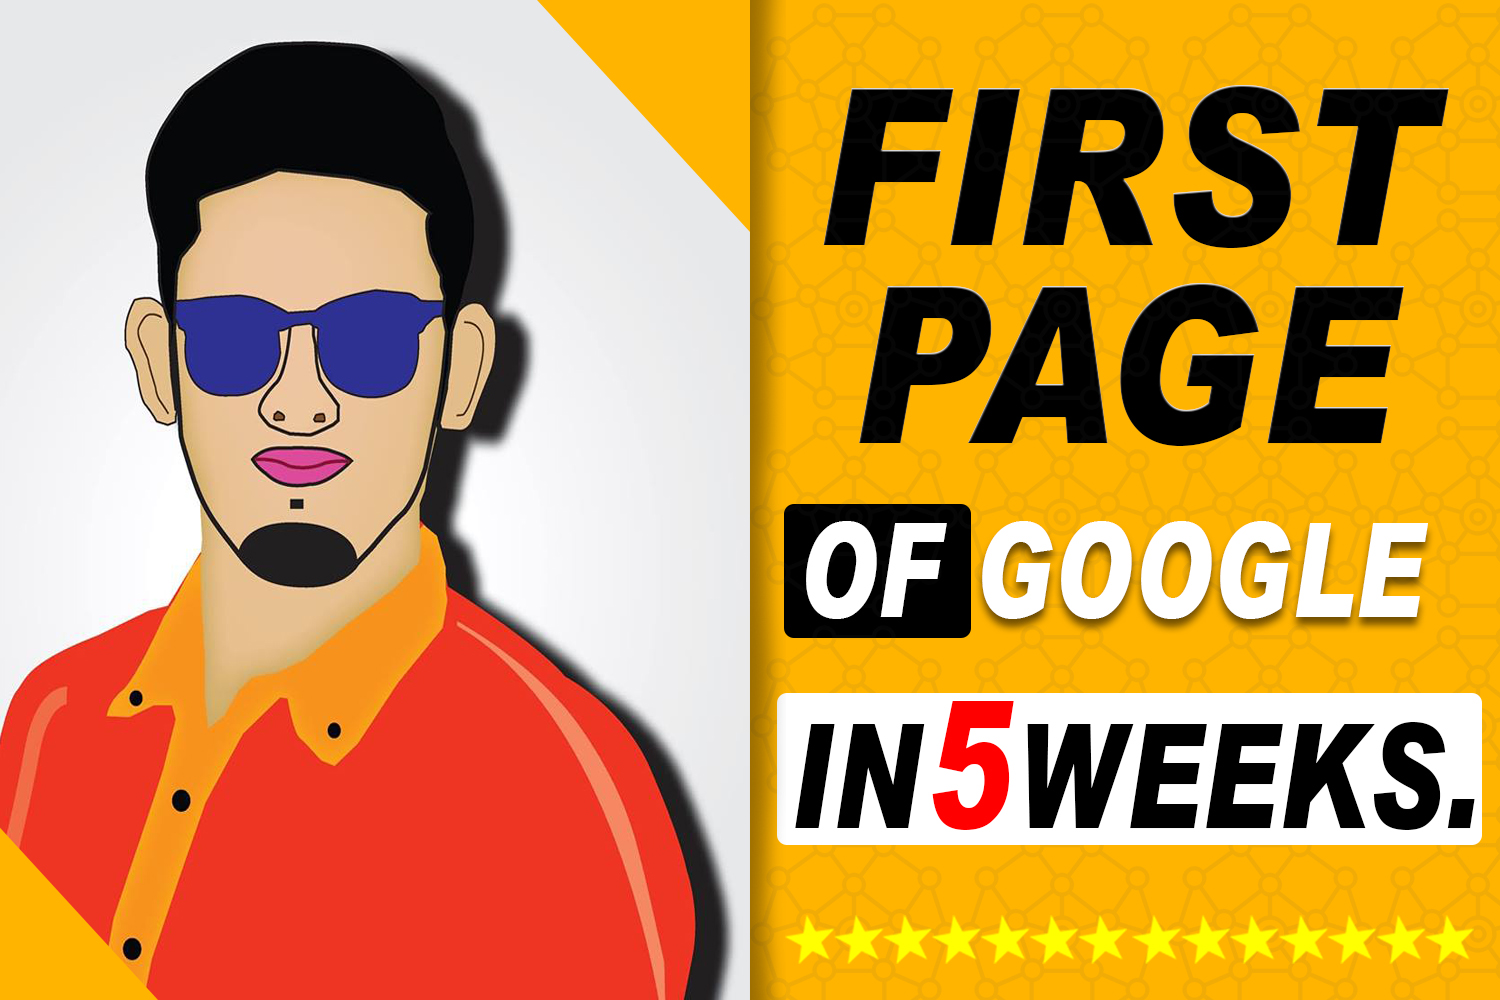 Sale Sale Buy 2 Get 1 Free First Page Of Google In 5 Weeks